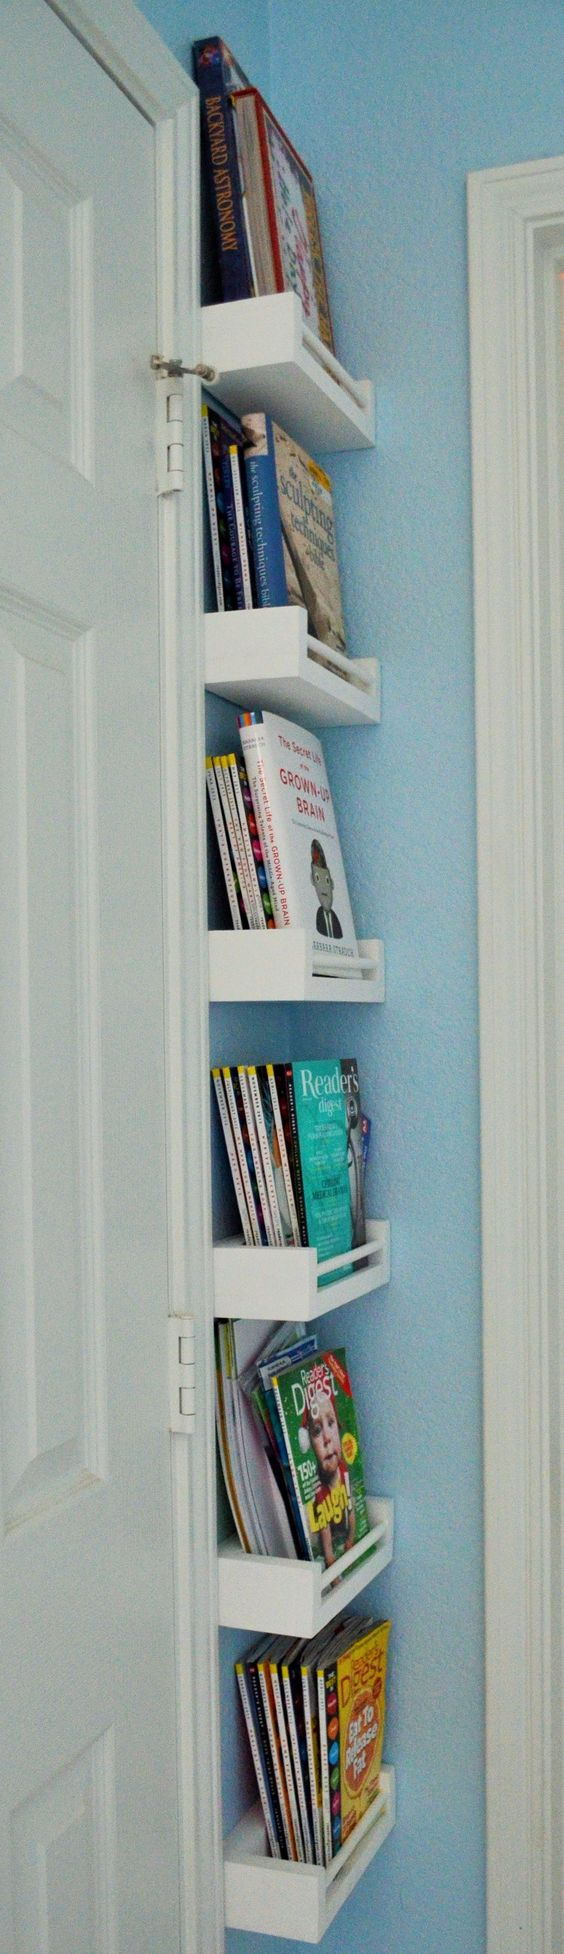 20 diy corner shelves to beautify your awkward corner 2017 - Small space toy storage ideas decor ...